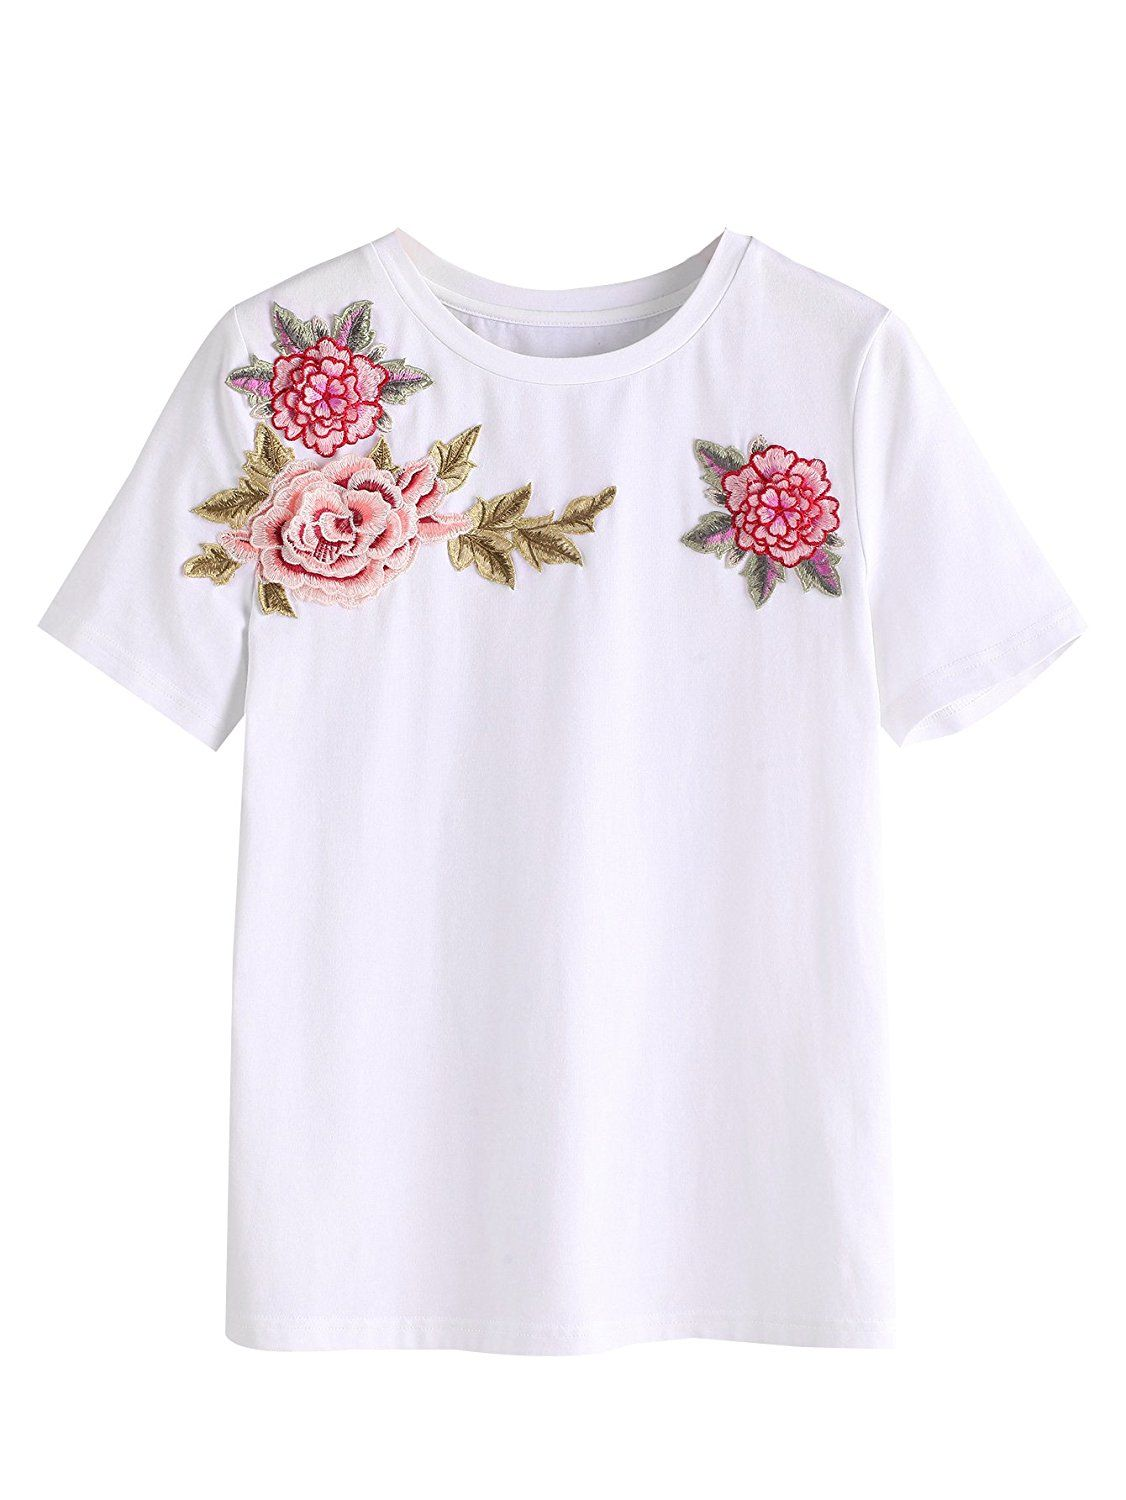 74bb5b40b38 SweatyRocks Women's Short Sleeve Floral Embroidered Cotton Casual T ...